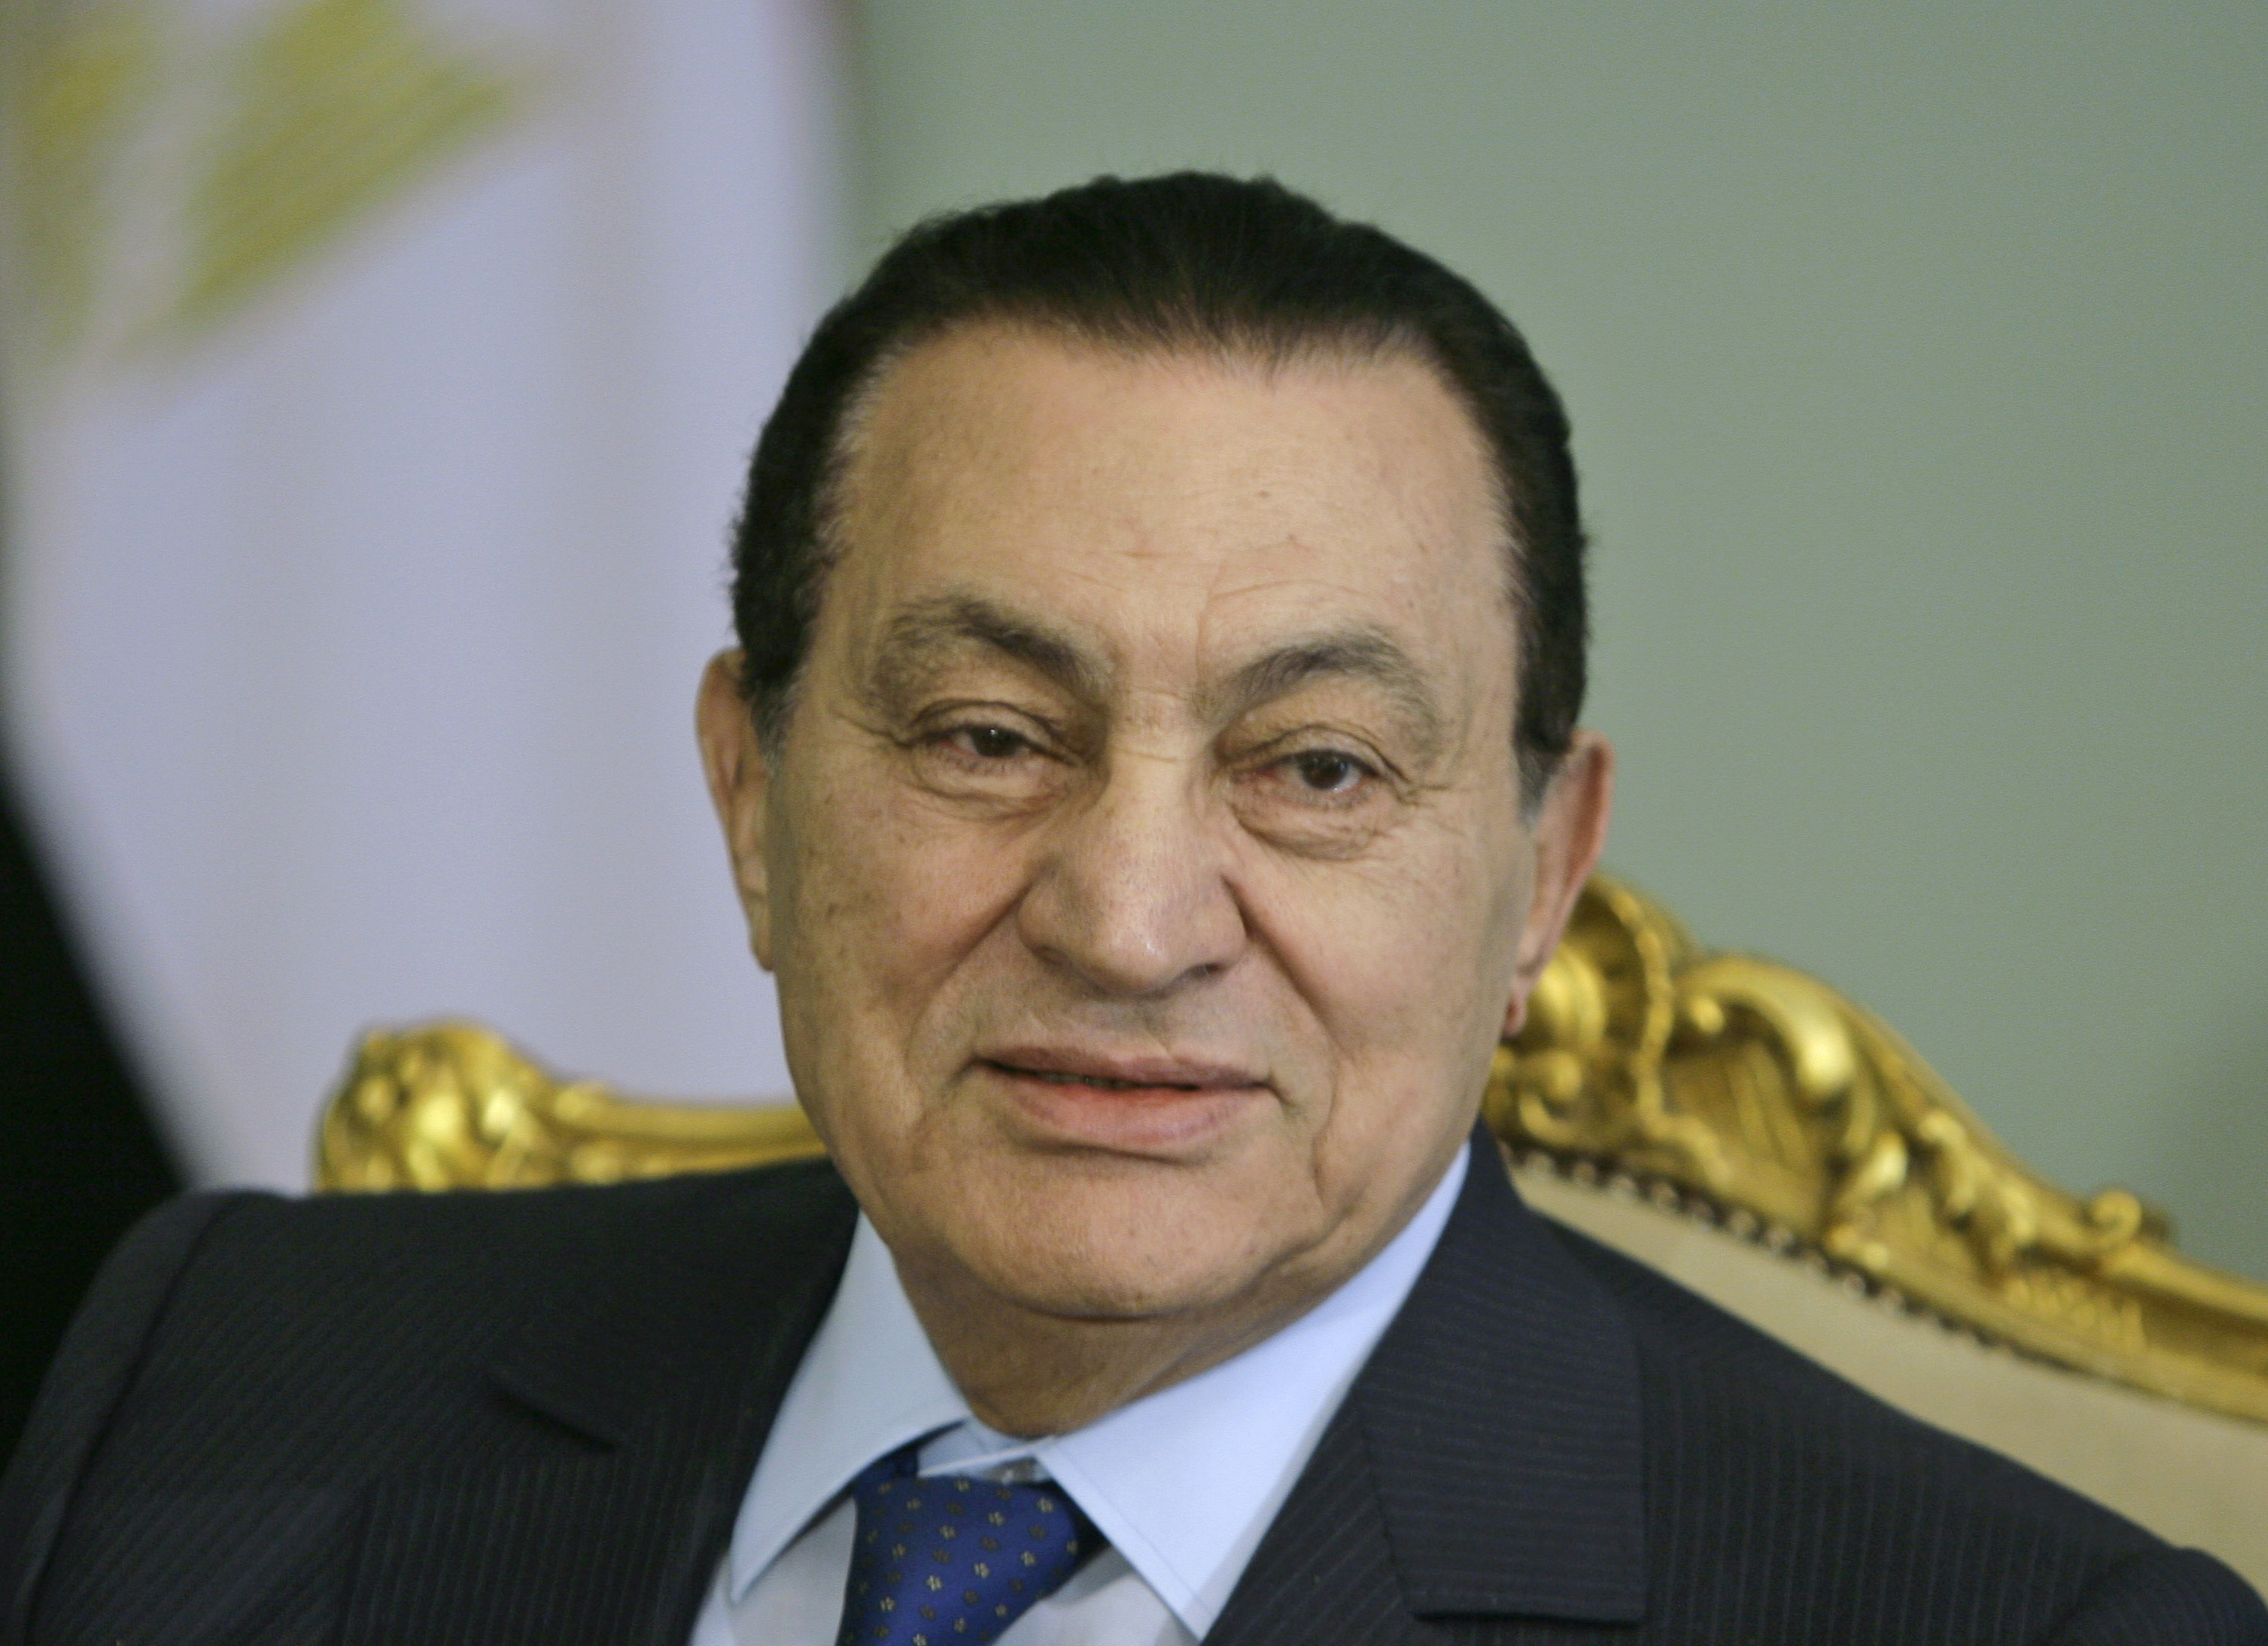 Mubarak, Egypt's Autocrat Ousted by Protests, Dies at 91